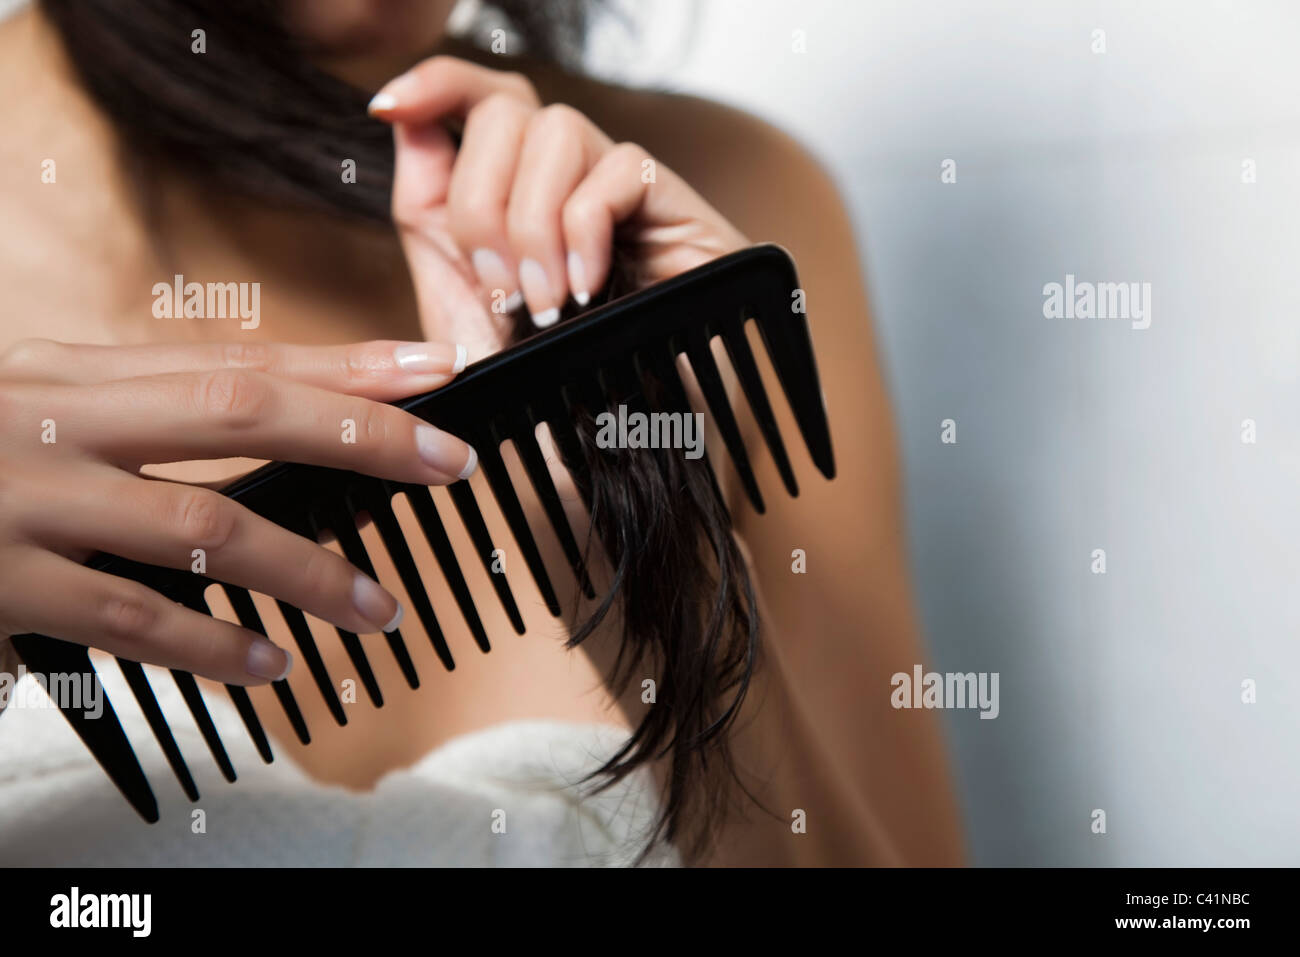 Woman combing her hair, cropped - Stock Image